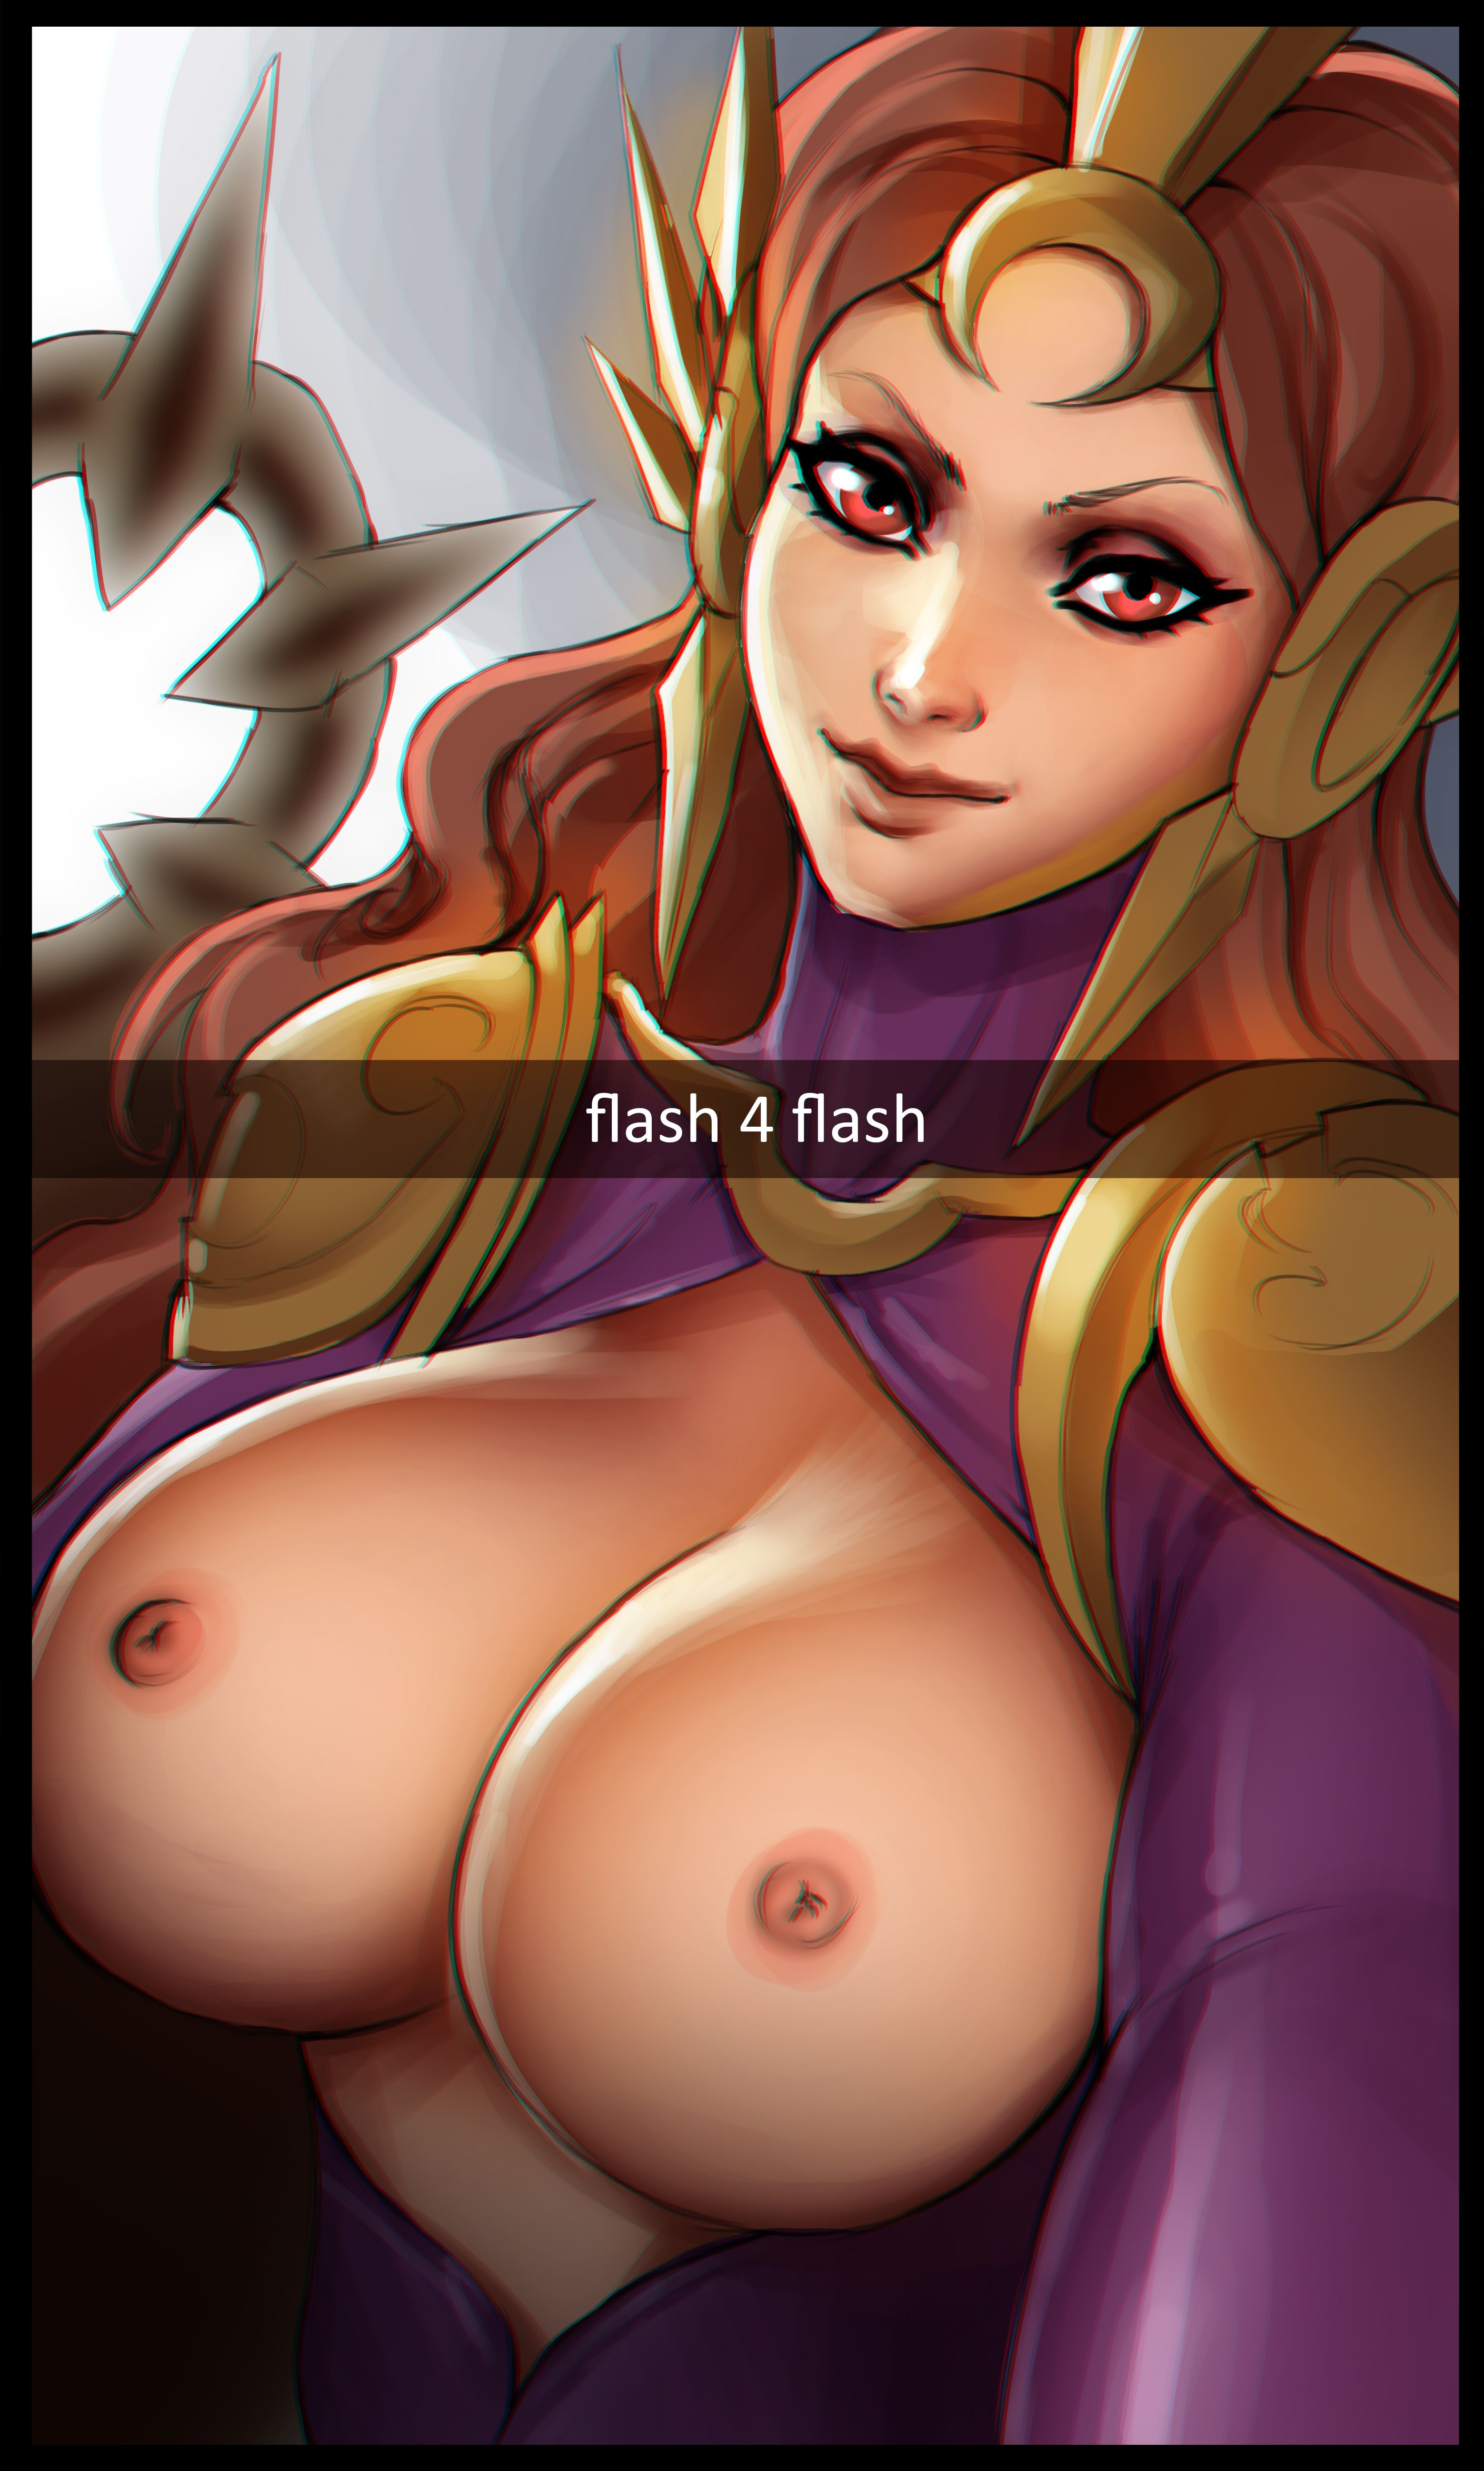 2501309 - League_of_Legends Leona Snapchat the-essential-squid